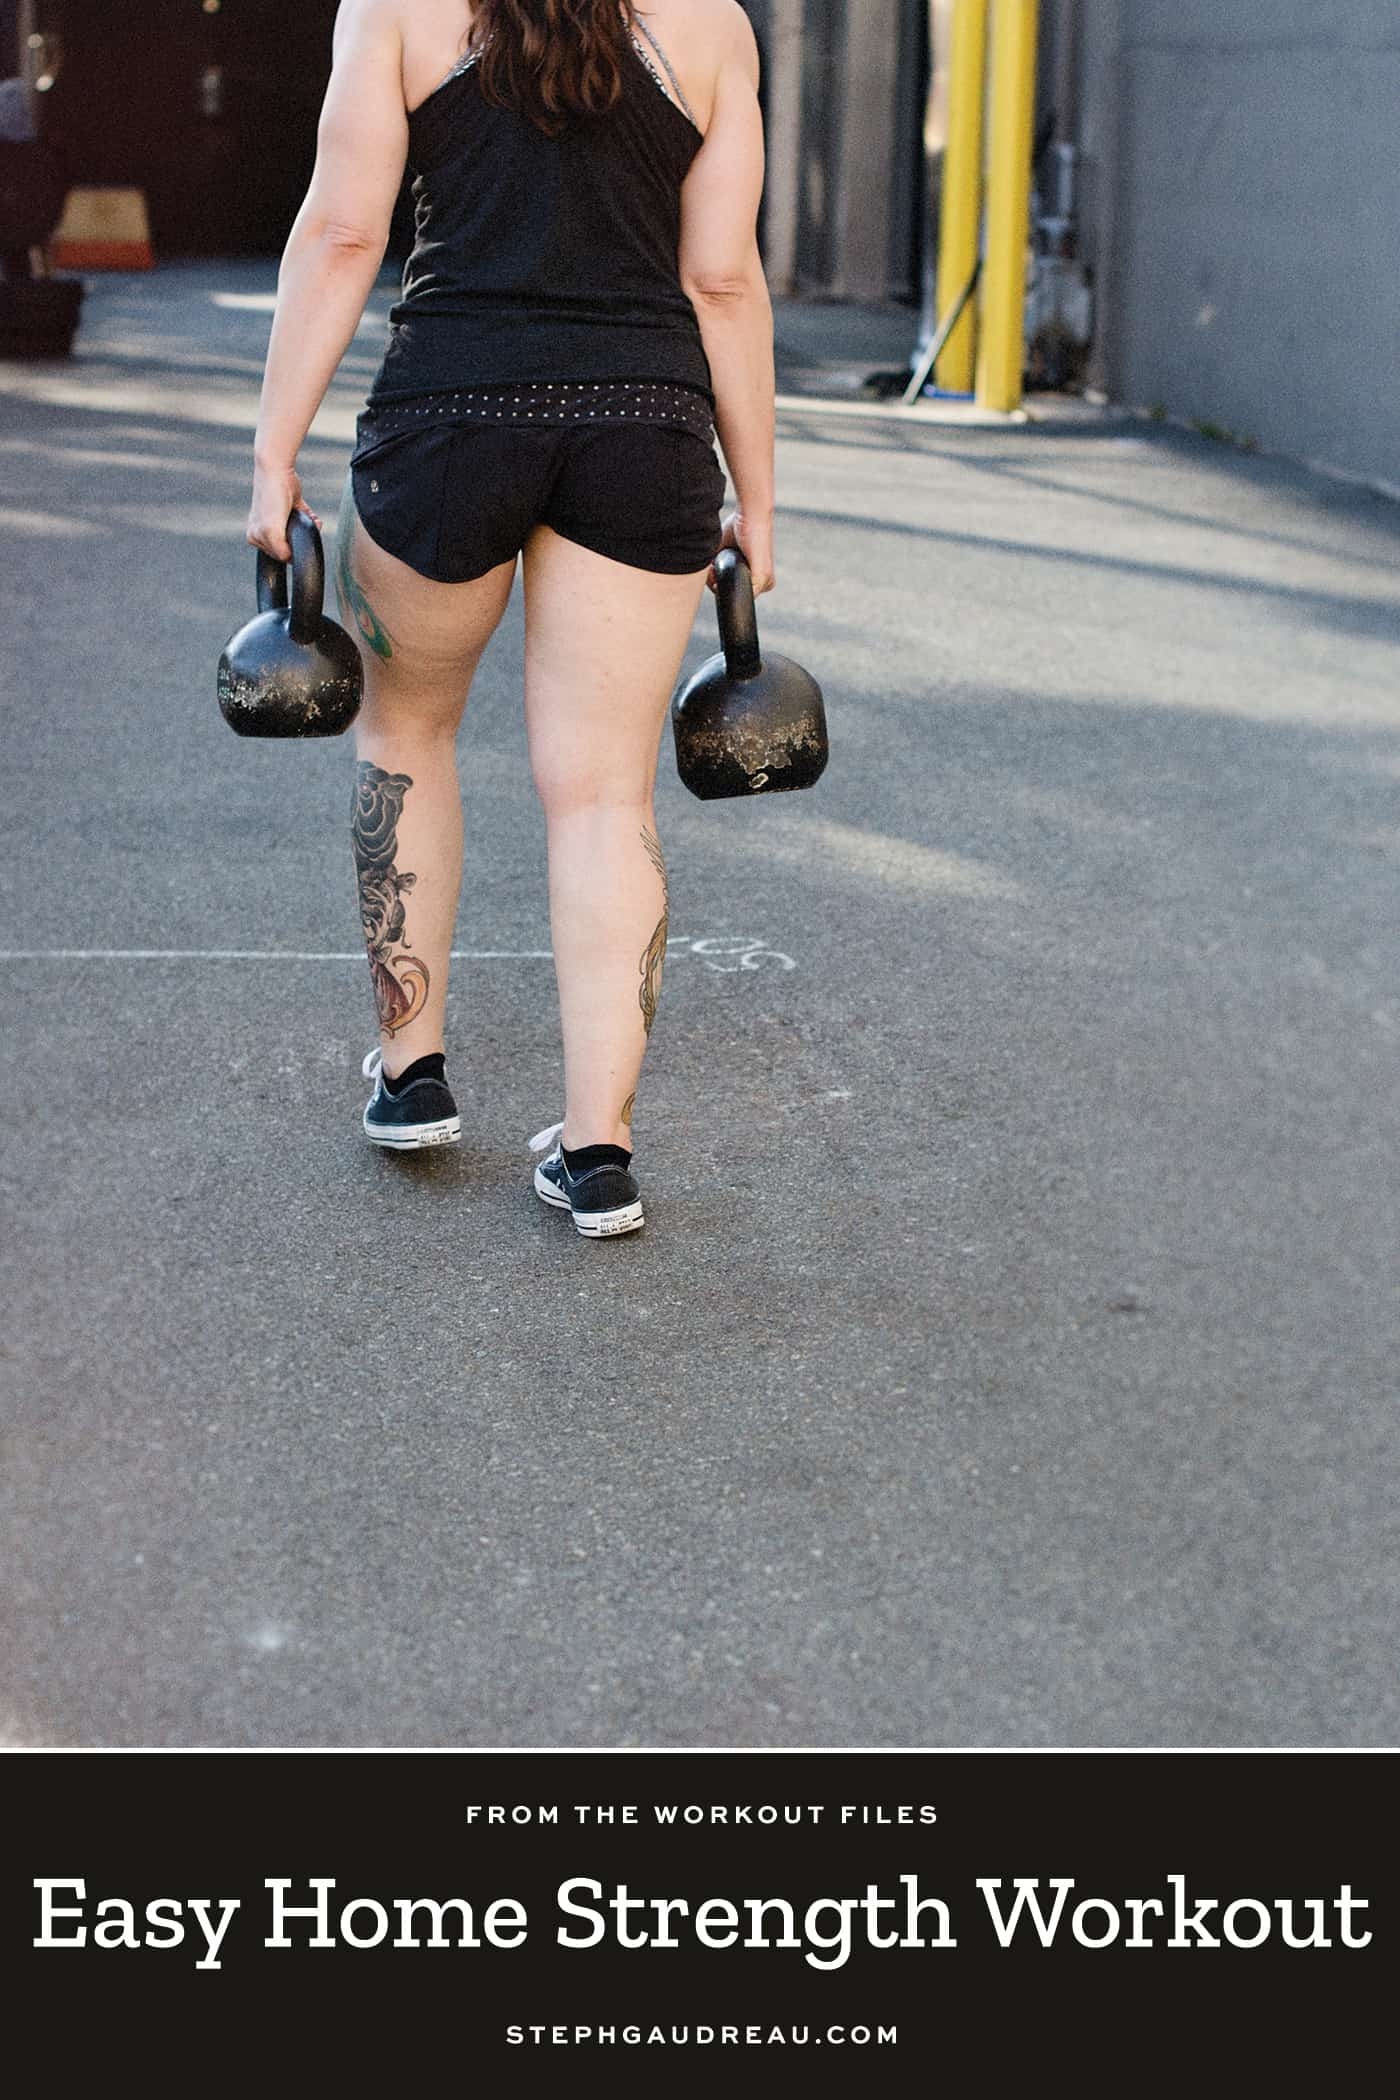 woman walking holding a kettlebell in each hand